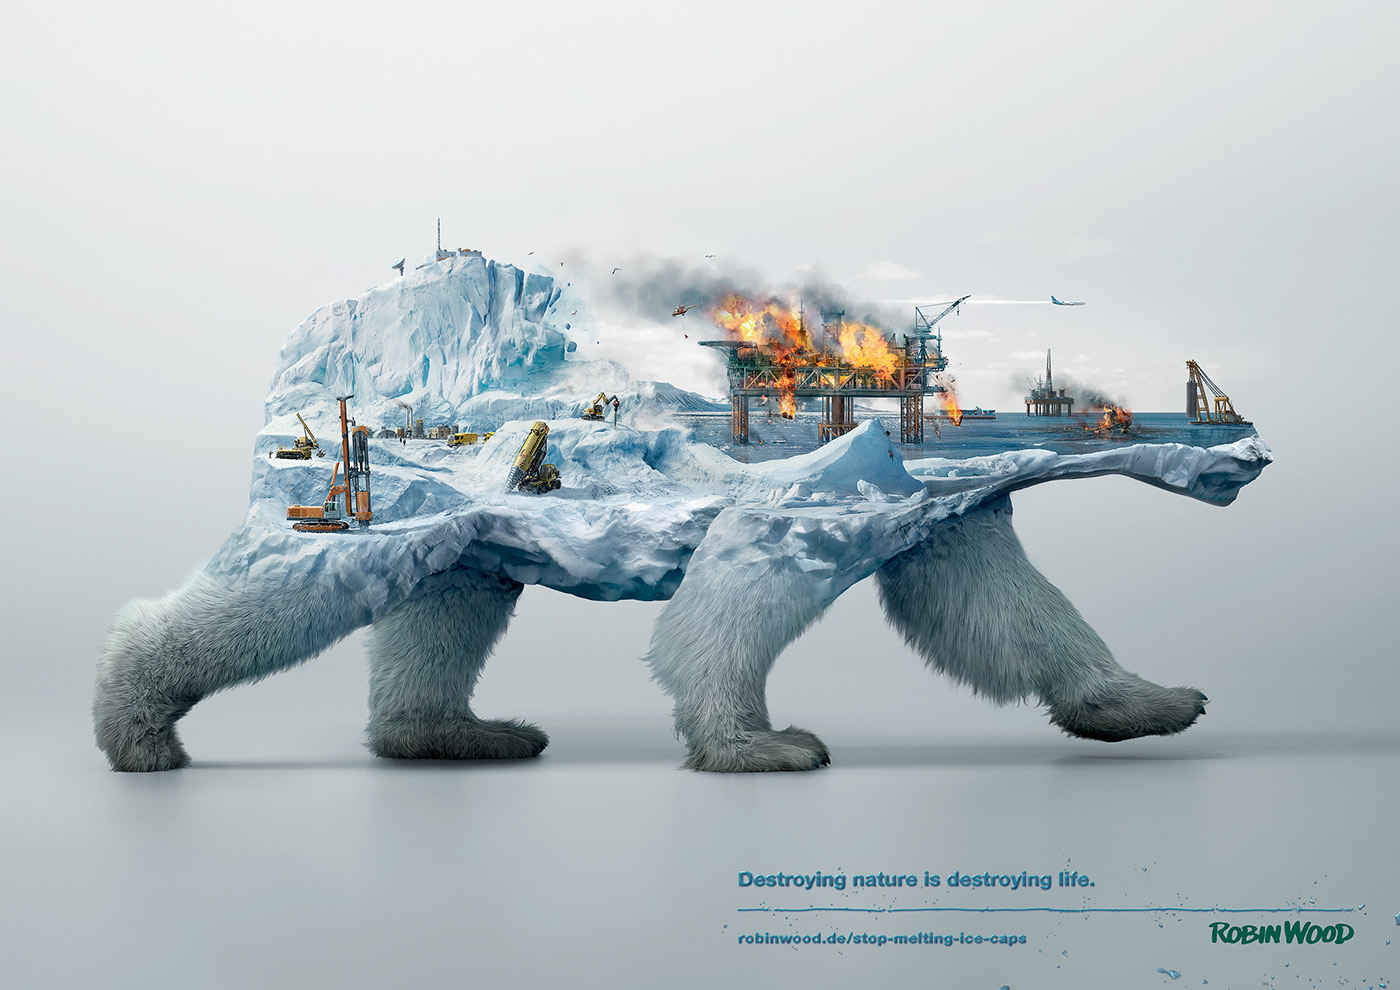 destroying-nature-is-destroying-life-cpm